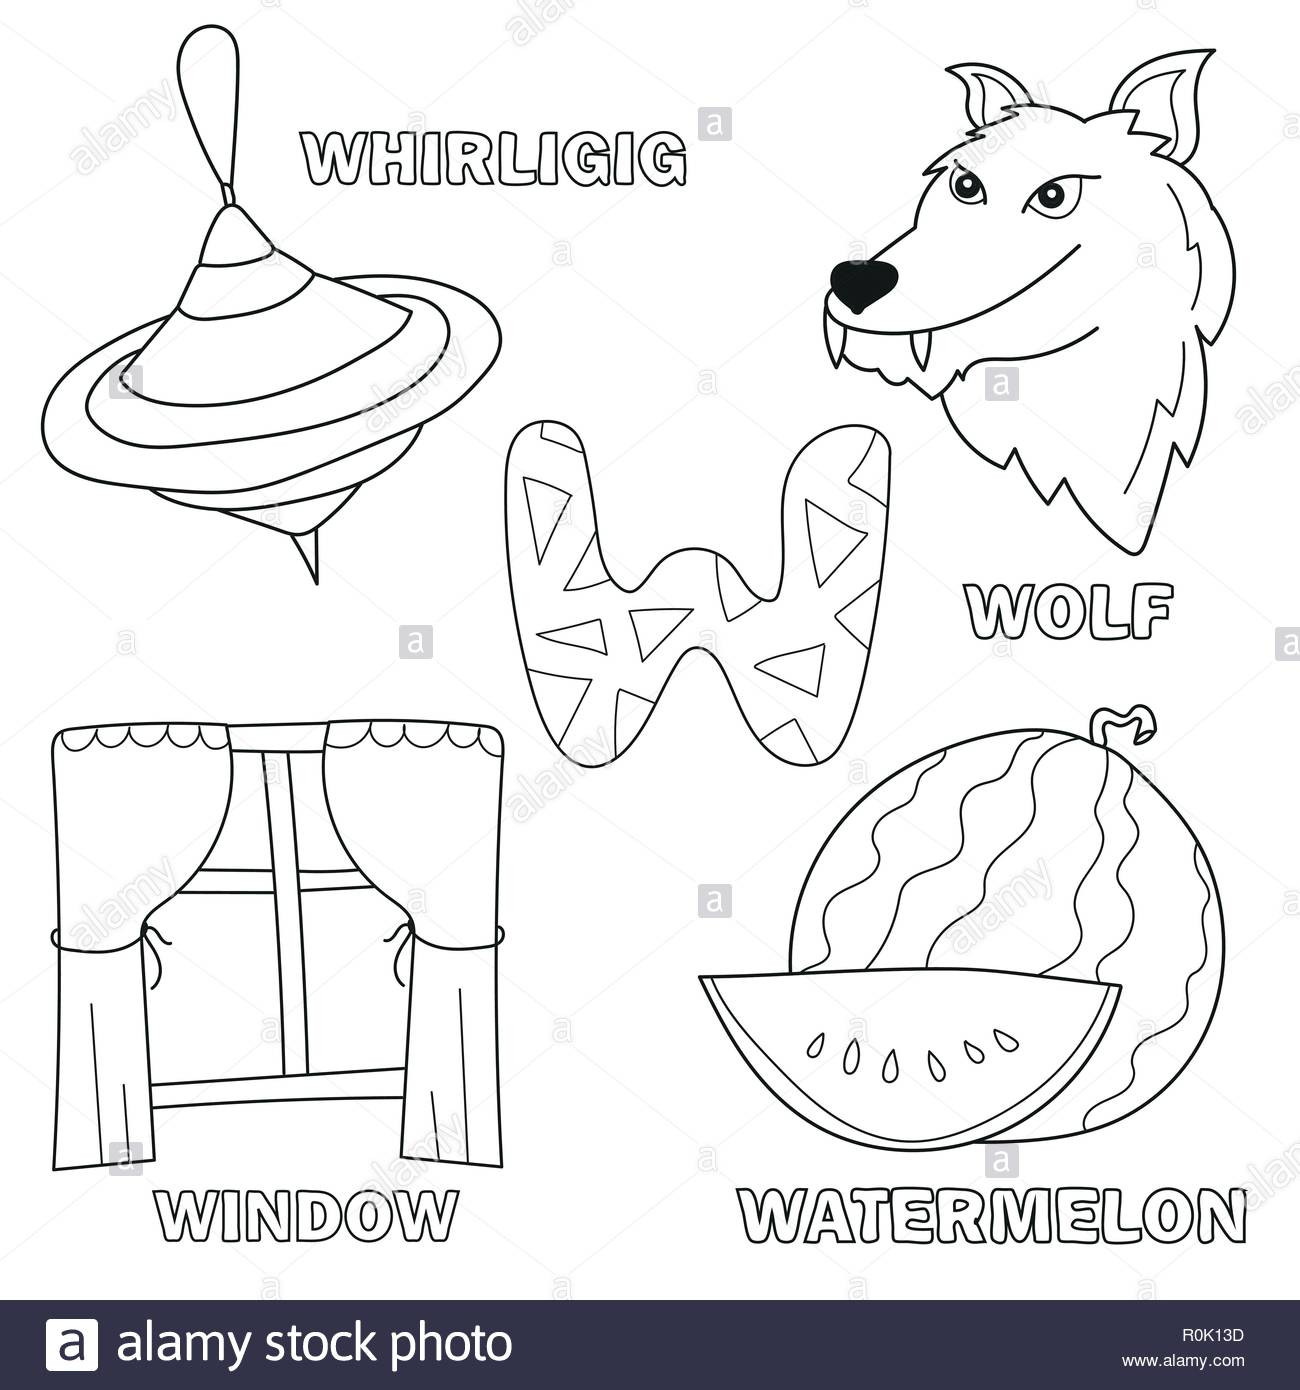 Letter W Worksheets for Preschoolers Black and White Cartoon Vector Illustration Of Letter W